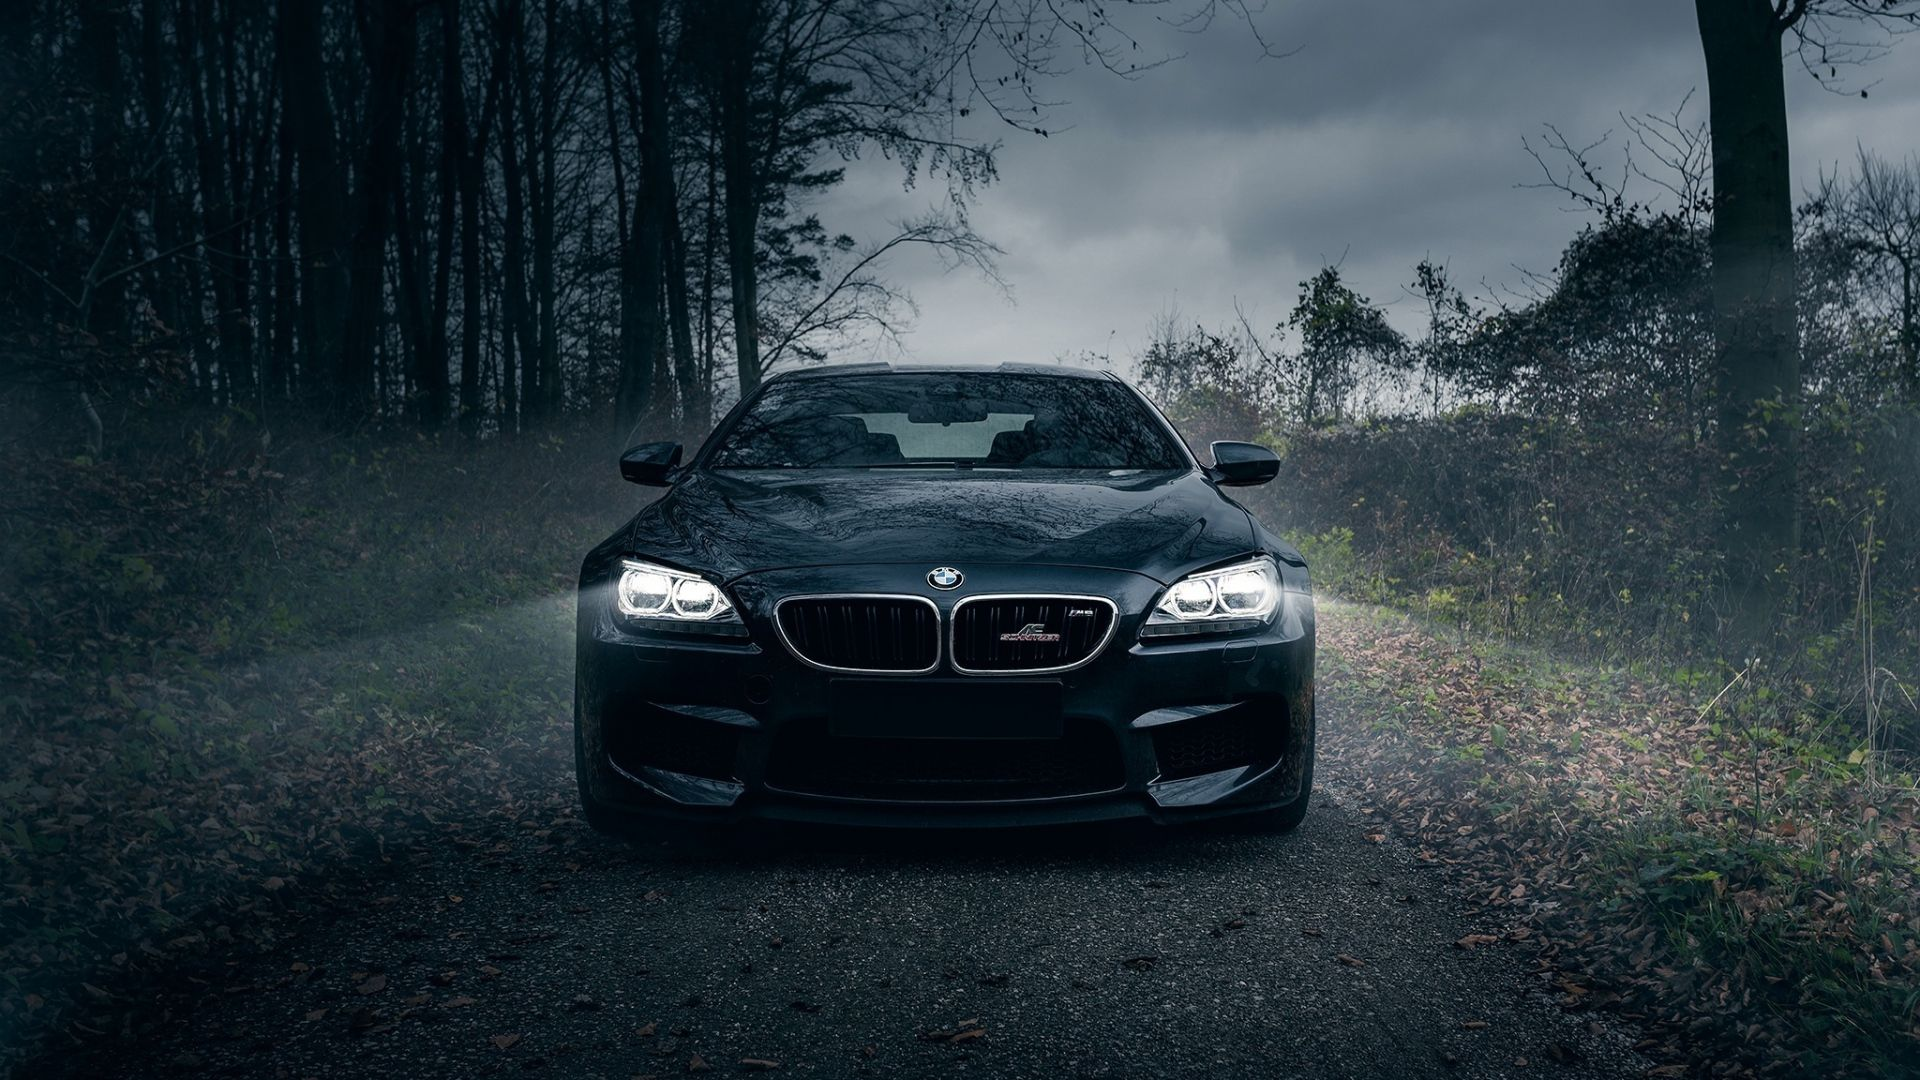 1920x1080 Wallpaper Bmw M6 Dark Knight Black Forest Fog Front